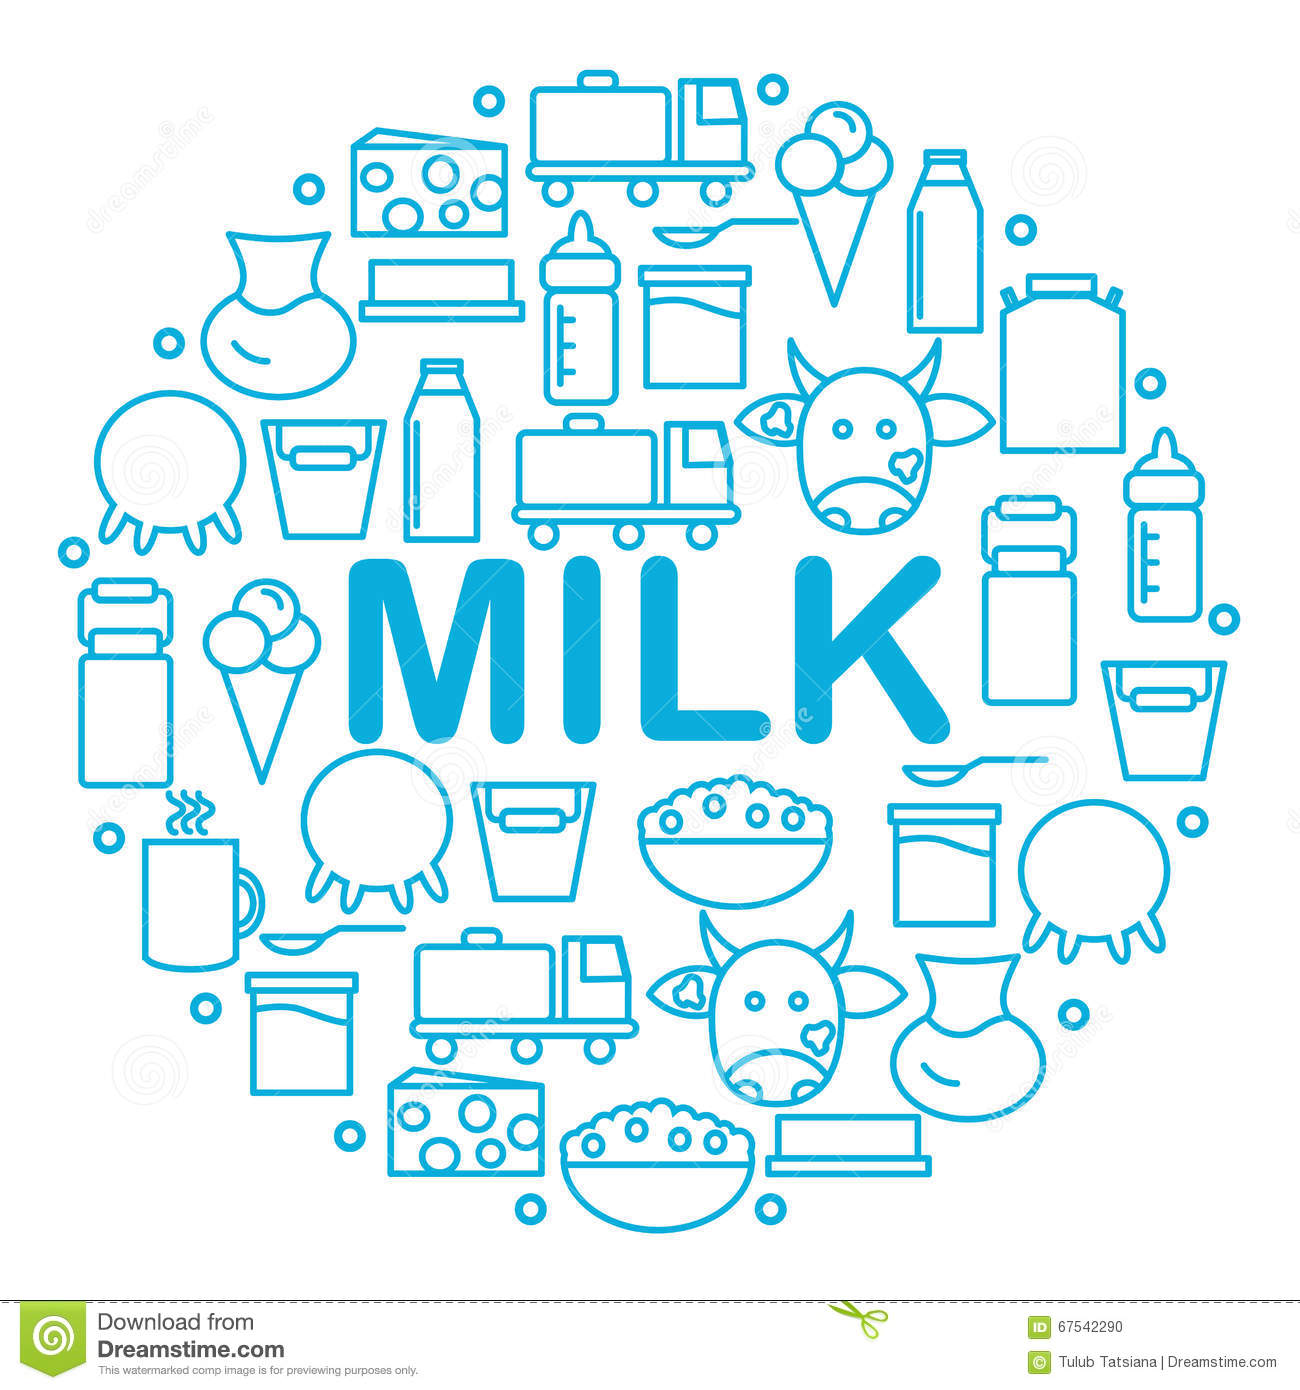 75 Great Dairy Promotion Slogans